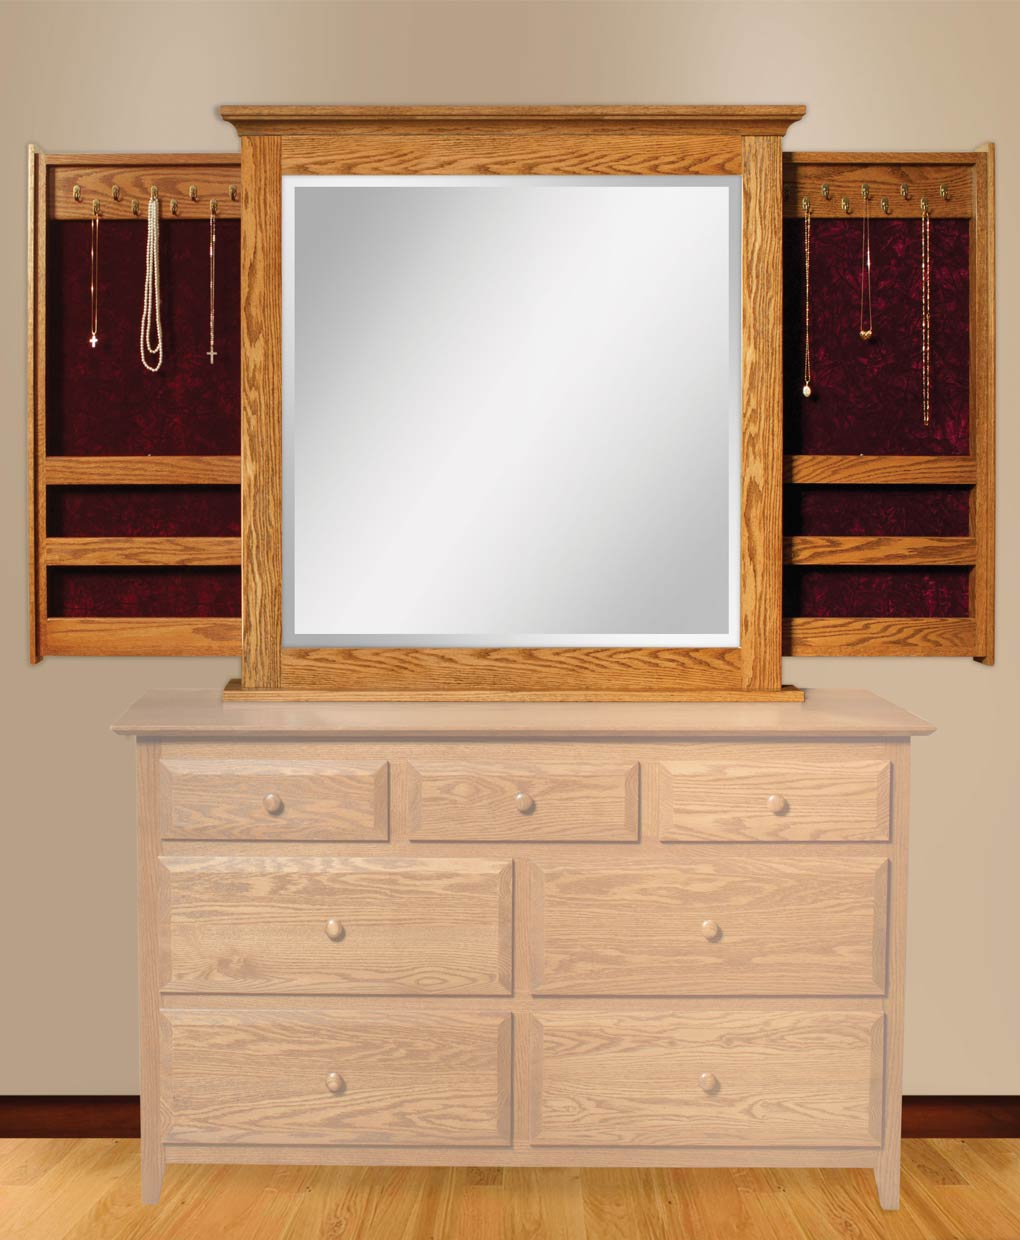 dresser mirror with jewelry wings amish direct furniture. Black Bedroom Furniture Sets. Home Design Ideas